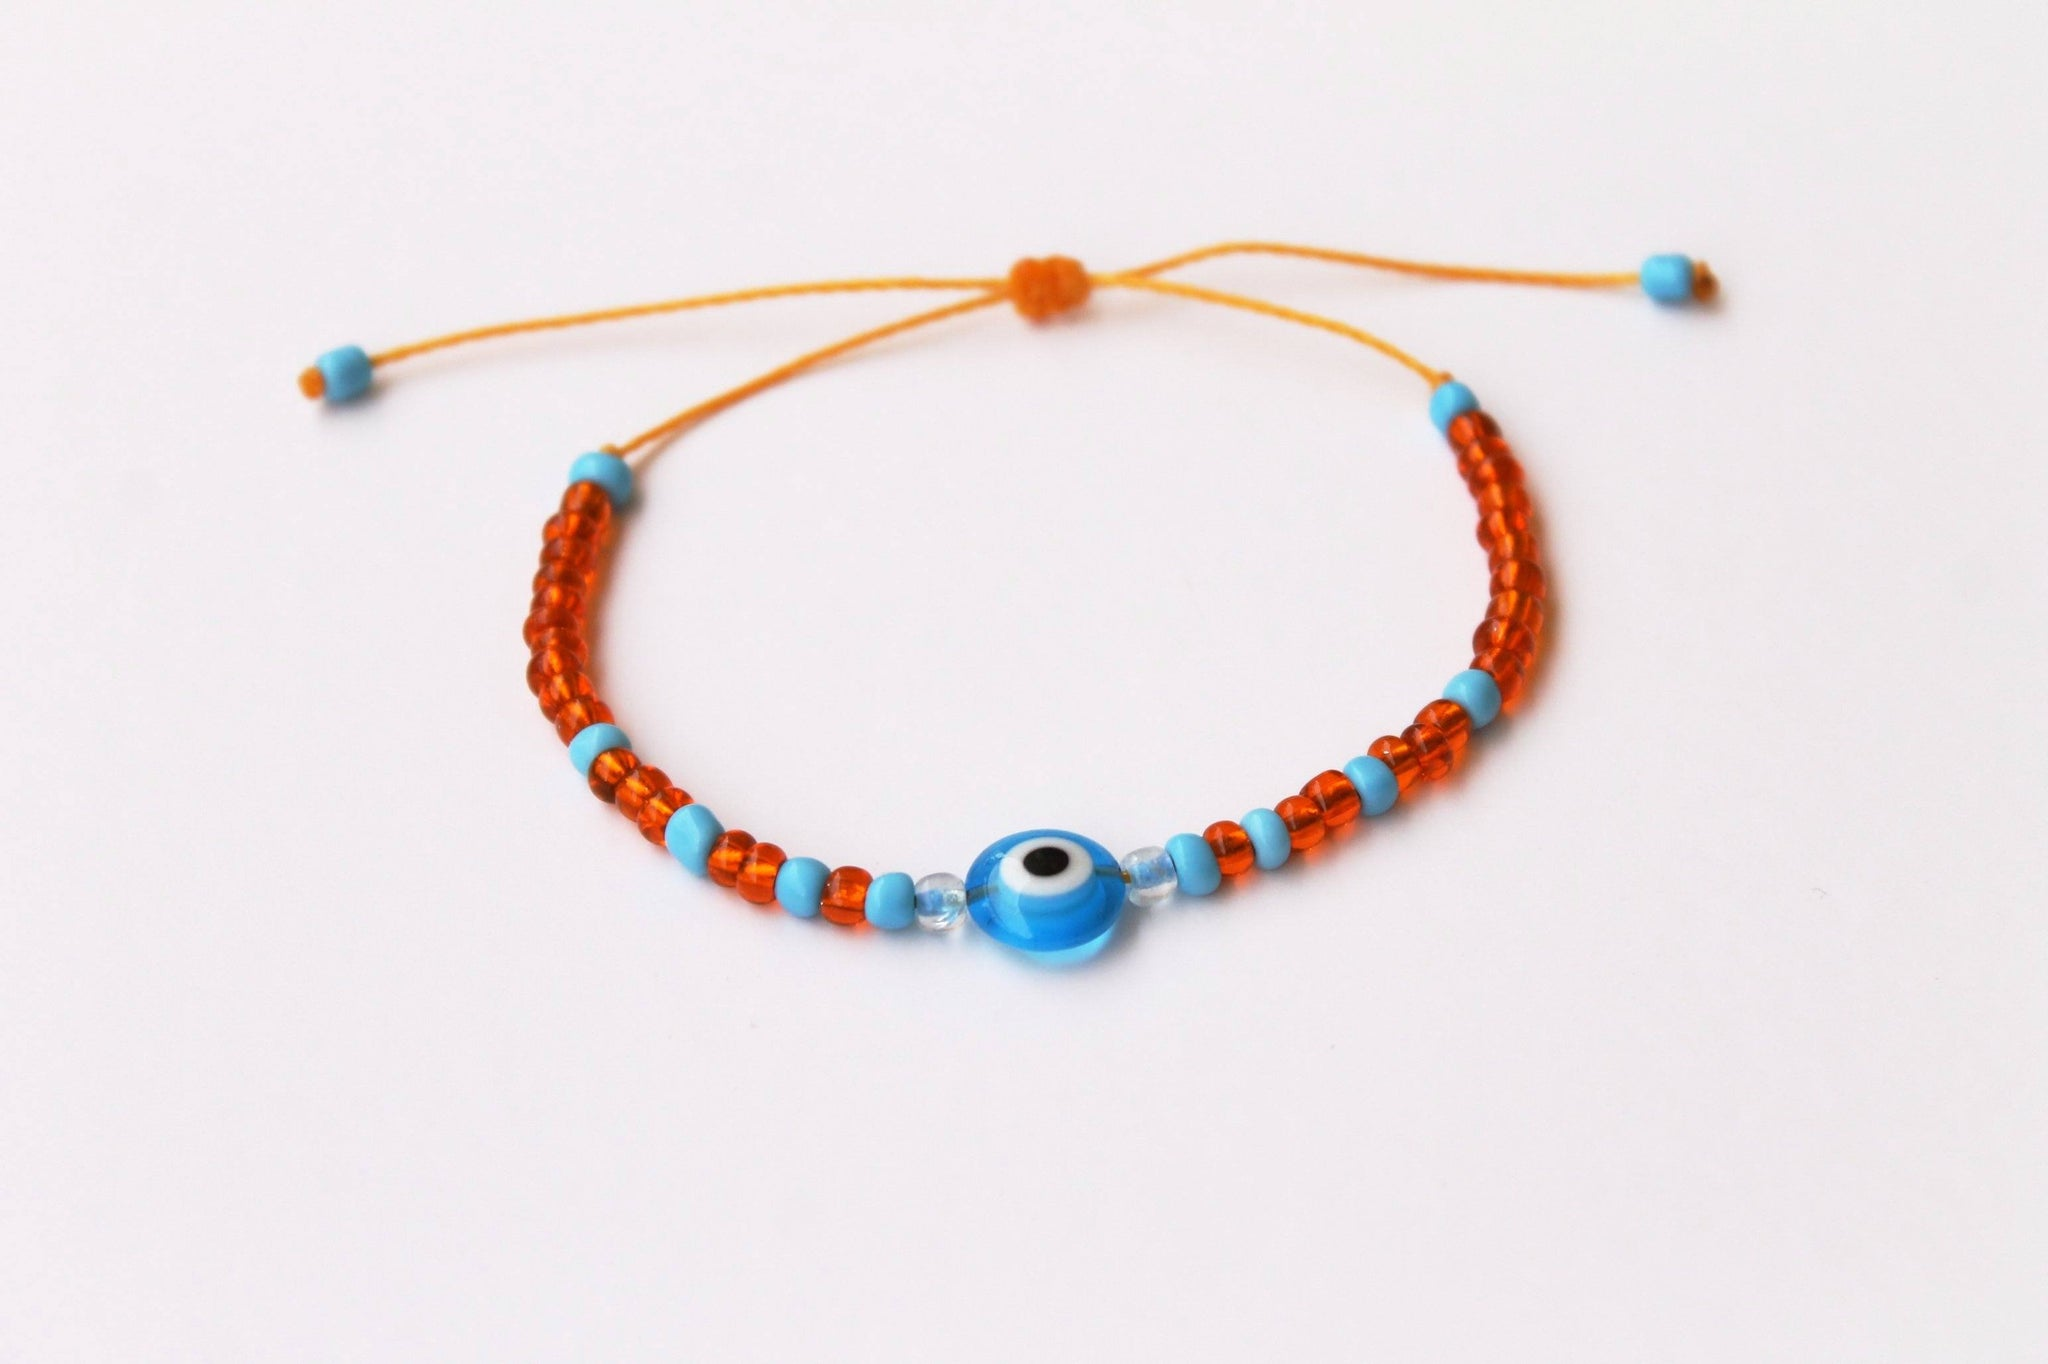 3ain Zar2a Orange Glass Seed Beads Bracelet